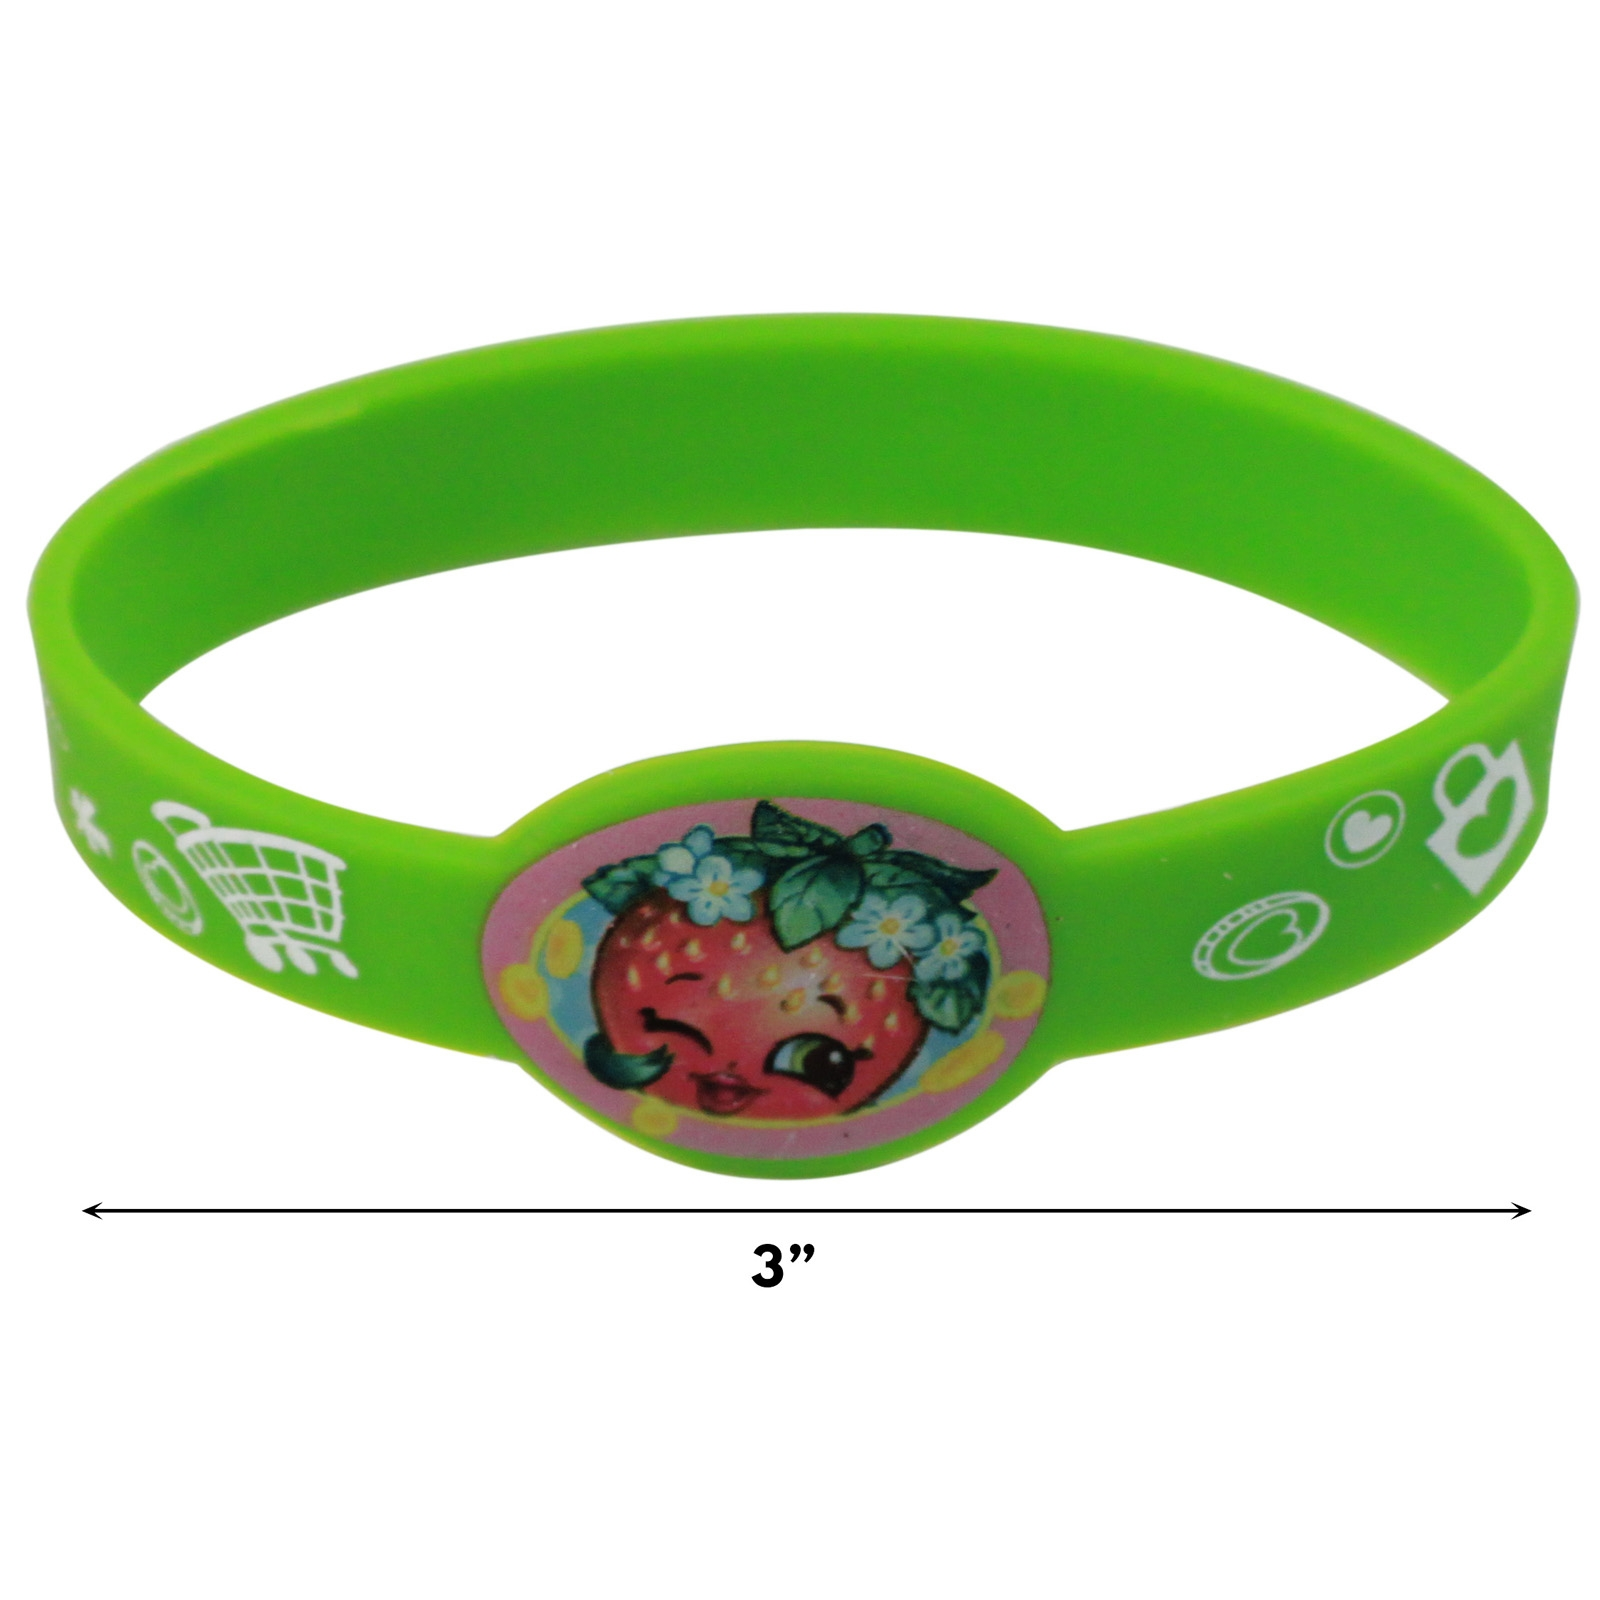 4pc Shopkins Stretchy Silicone Bracelets Gift Set D'Lish Donut Apple Blossom